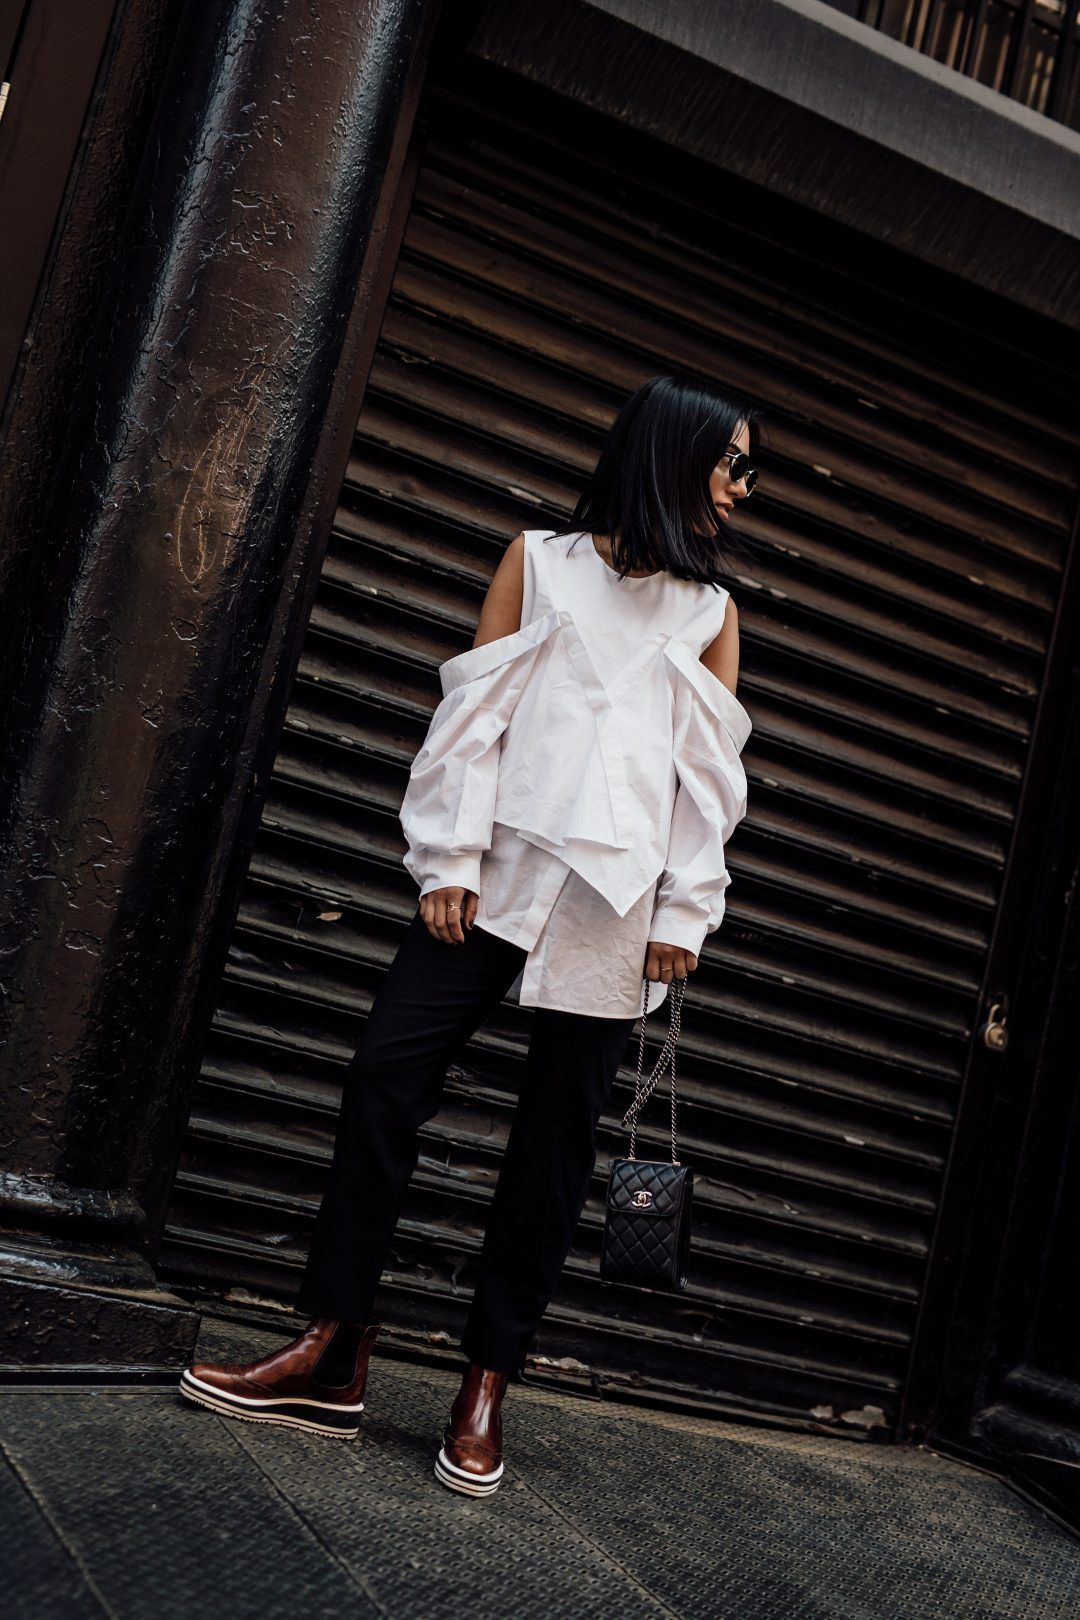 e3c8eb986330 LA Blogger Tania Sarin in NYC wearing enfold cold shoulder top and prada  booties